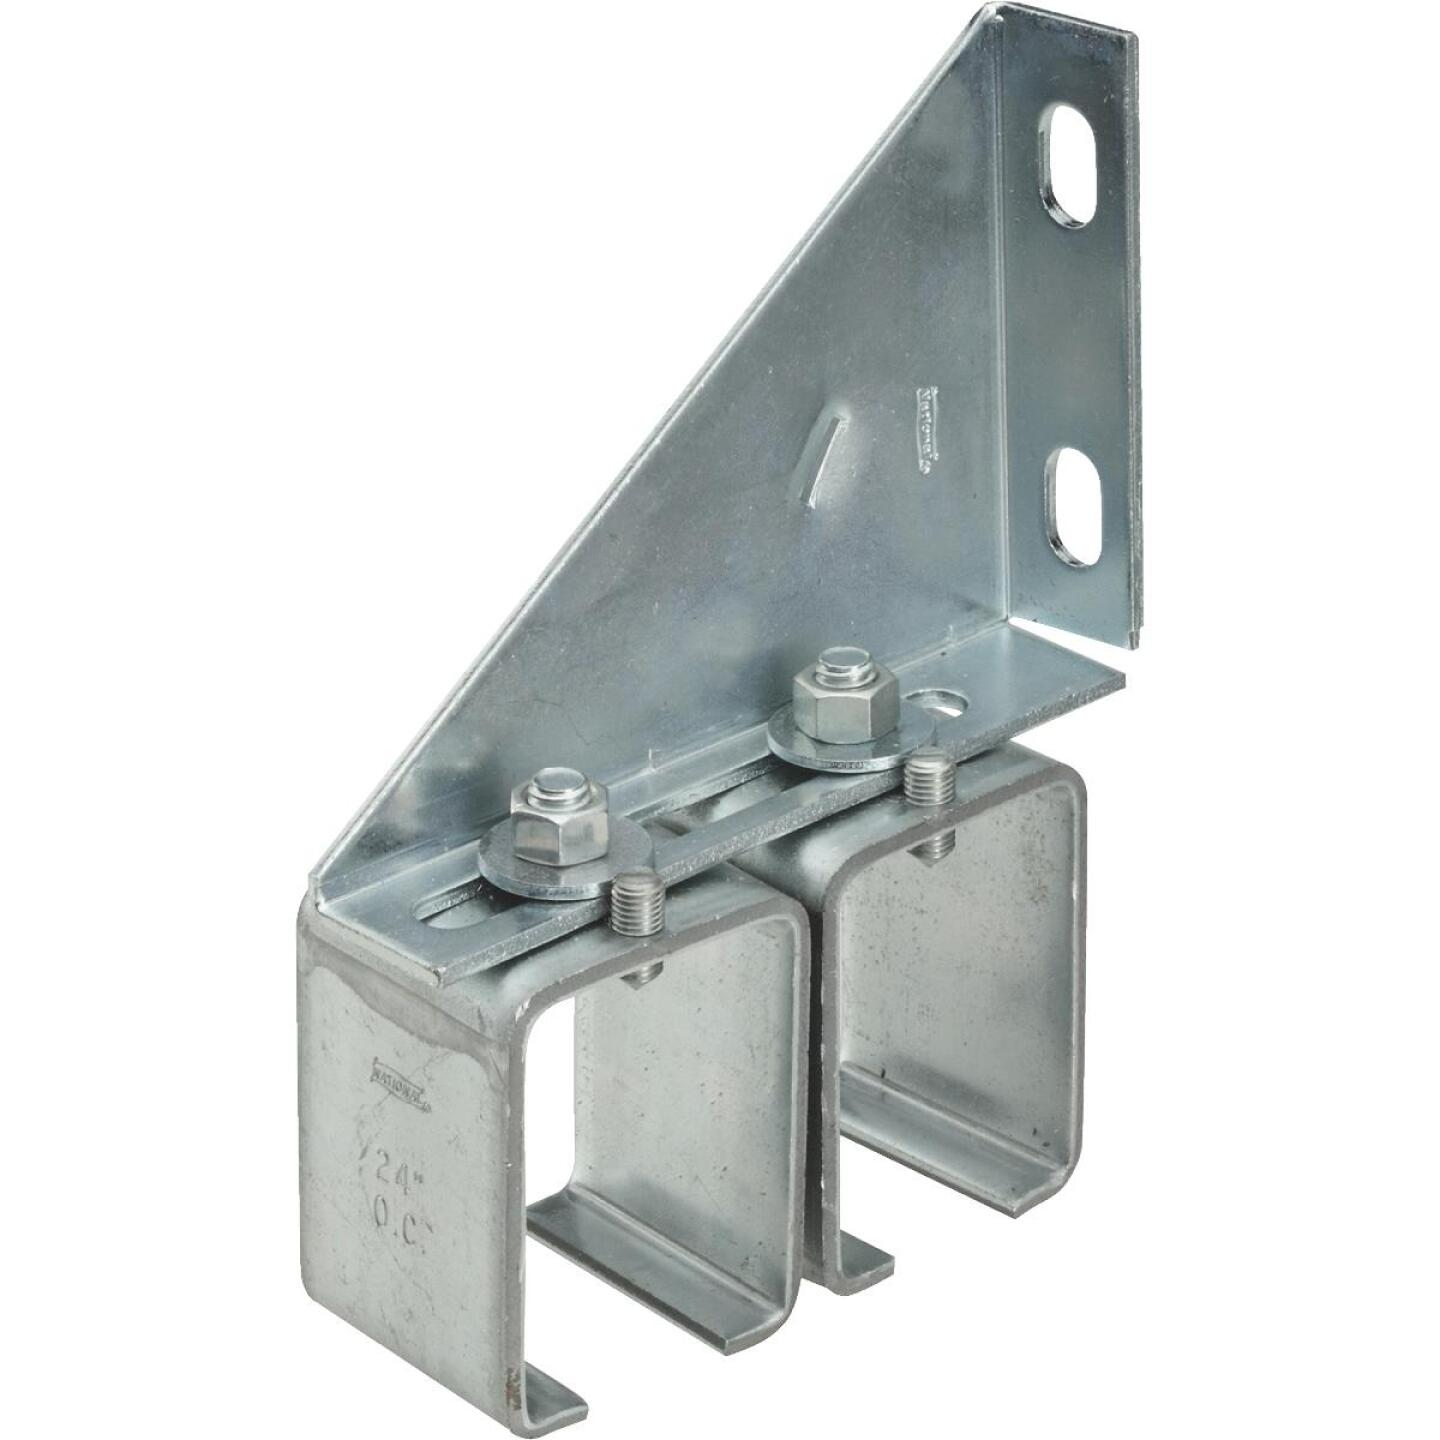 National Galvanized Double Splice Box Rail Barn Door Bracket Image 1